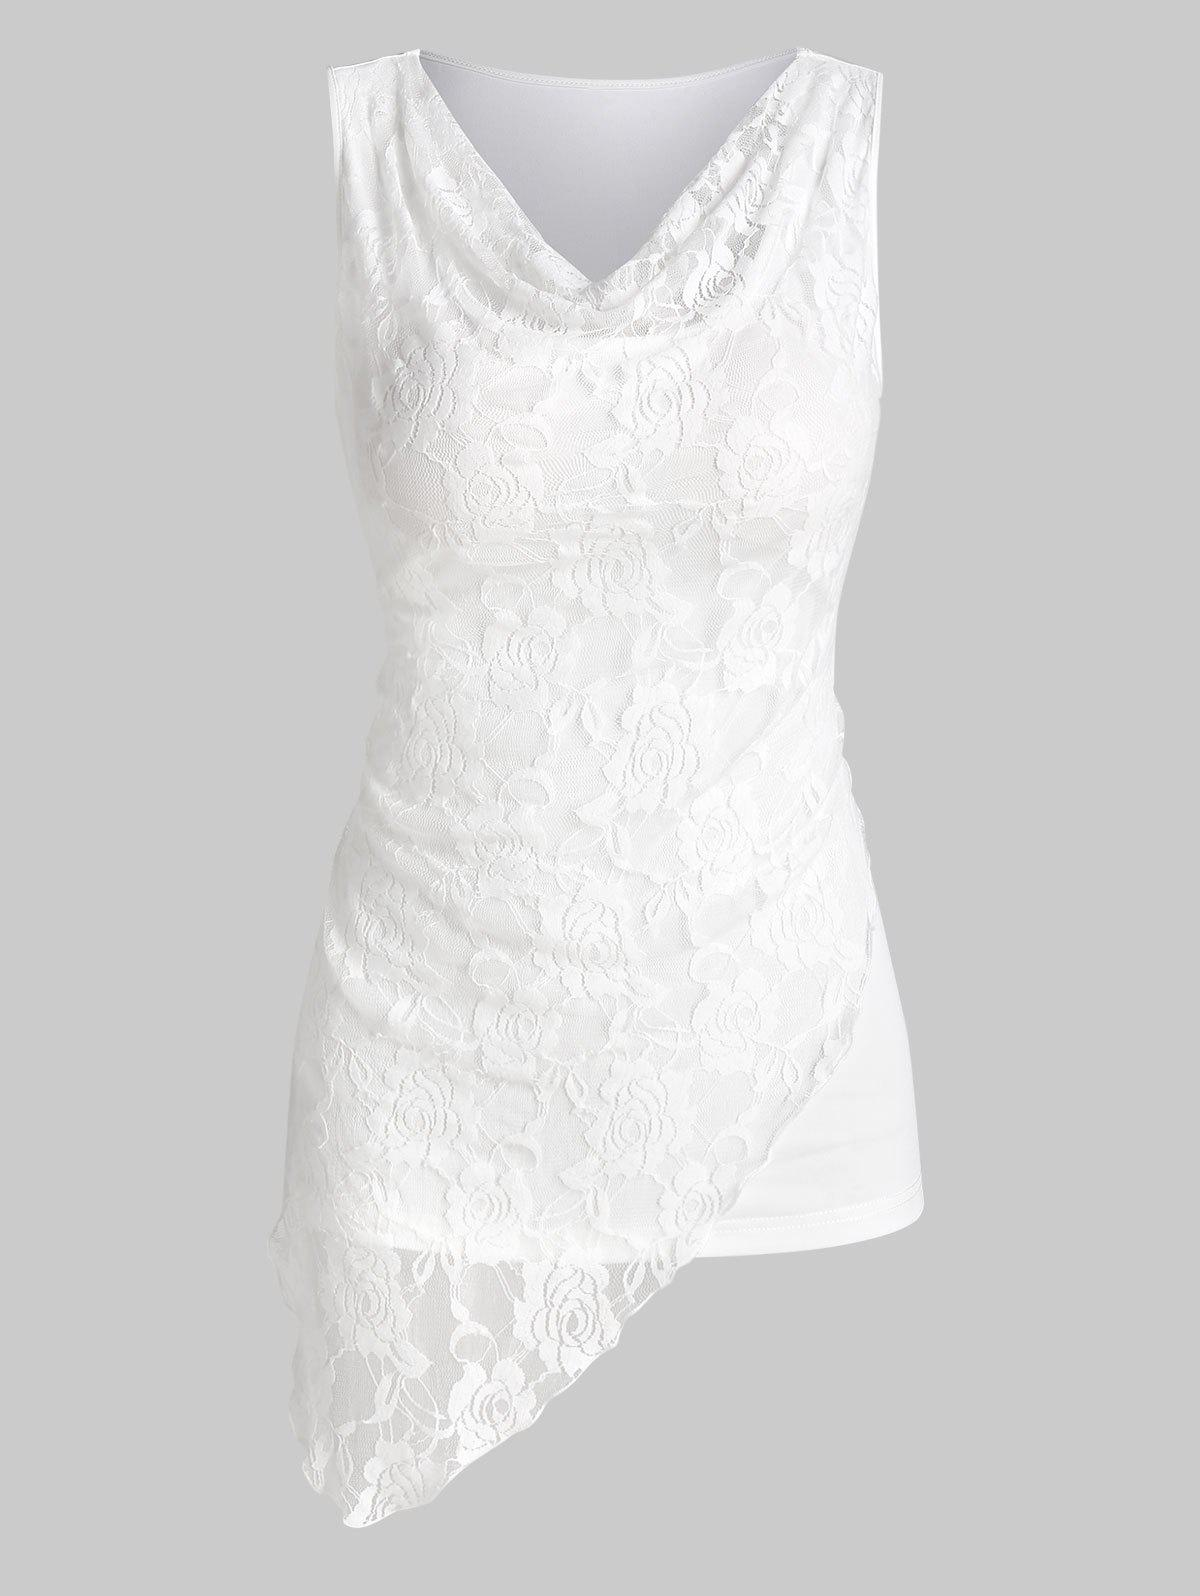 Plain Cowl Neck Lace Insert Longline Tank Top - WHITE L